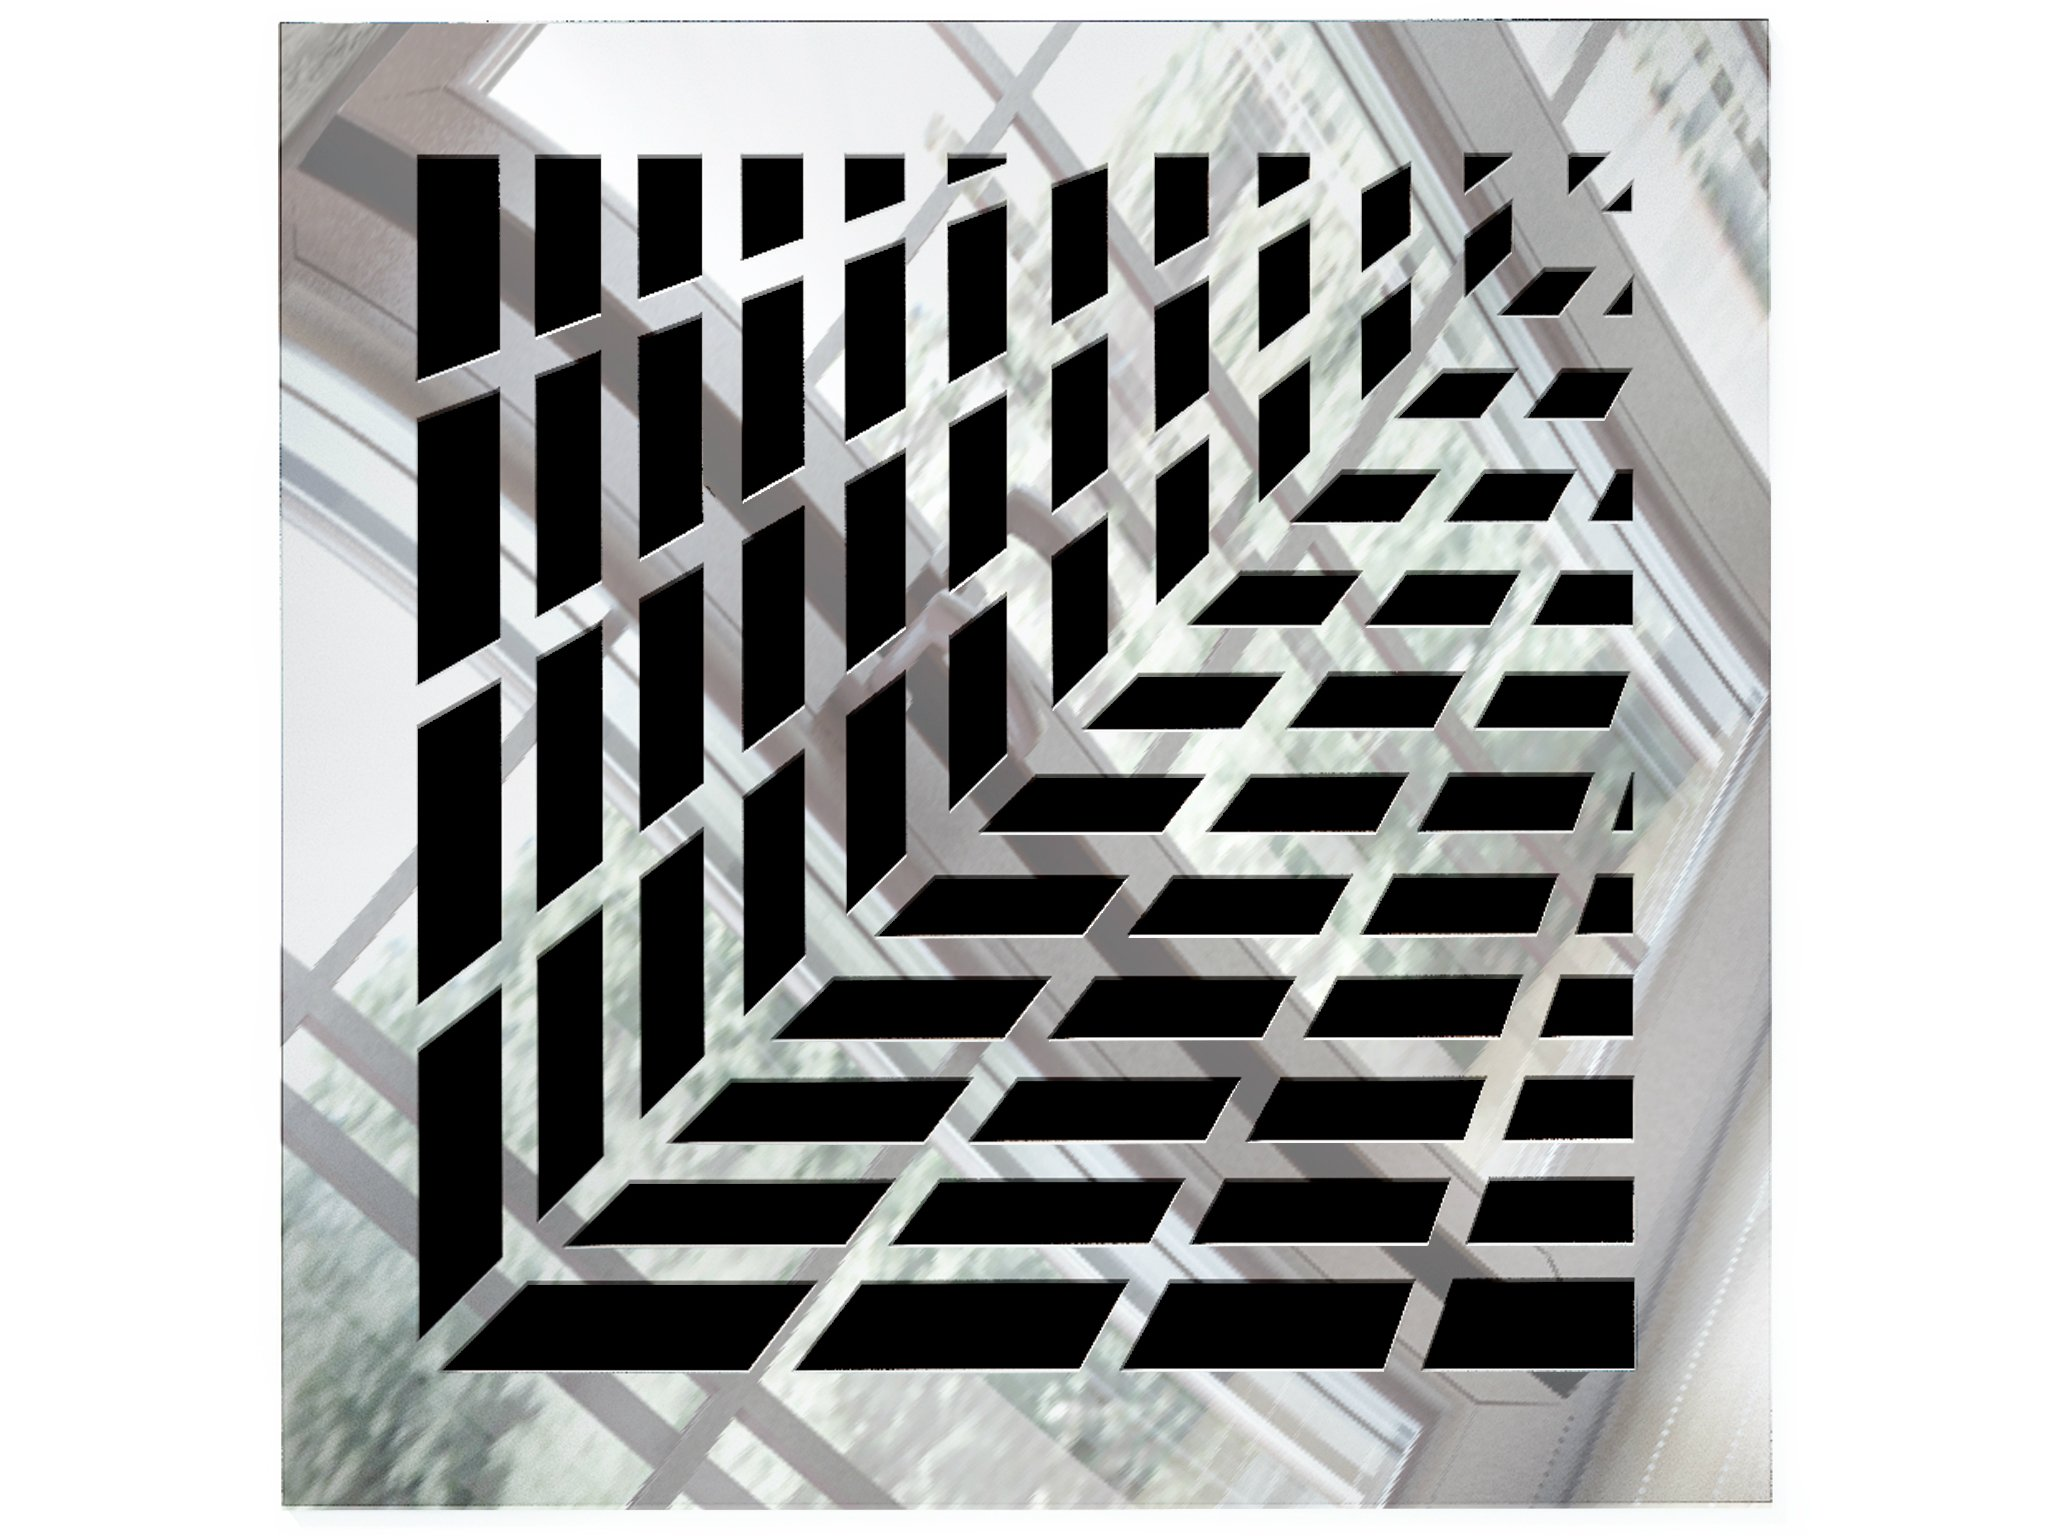 Saba Vent Covers Air Grille - Acrylic Fiberglass Register 8'' x 8'' Duct Opening (10'' x 10'' Overall) Mirror Finish Decorative Register for Walls, Ceilings NOT Floor use, Vivian